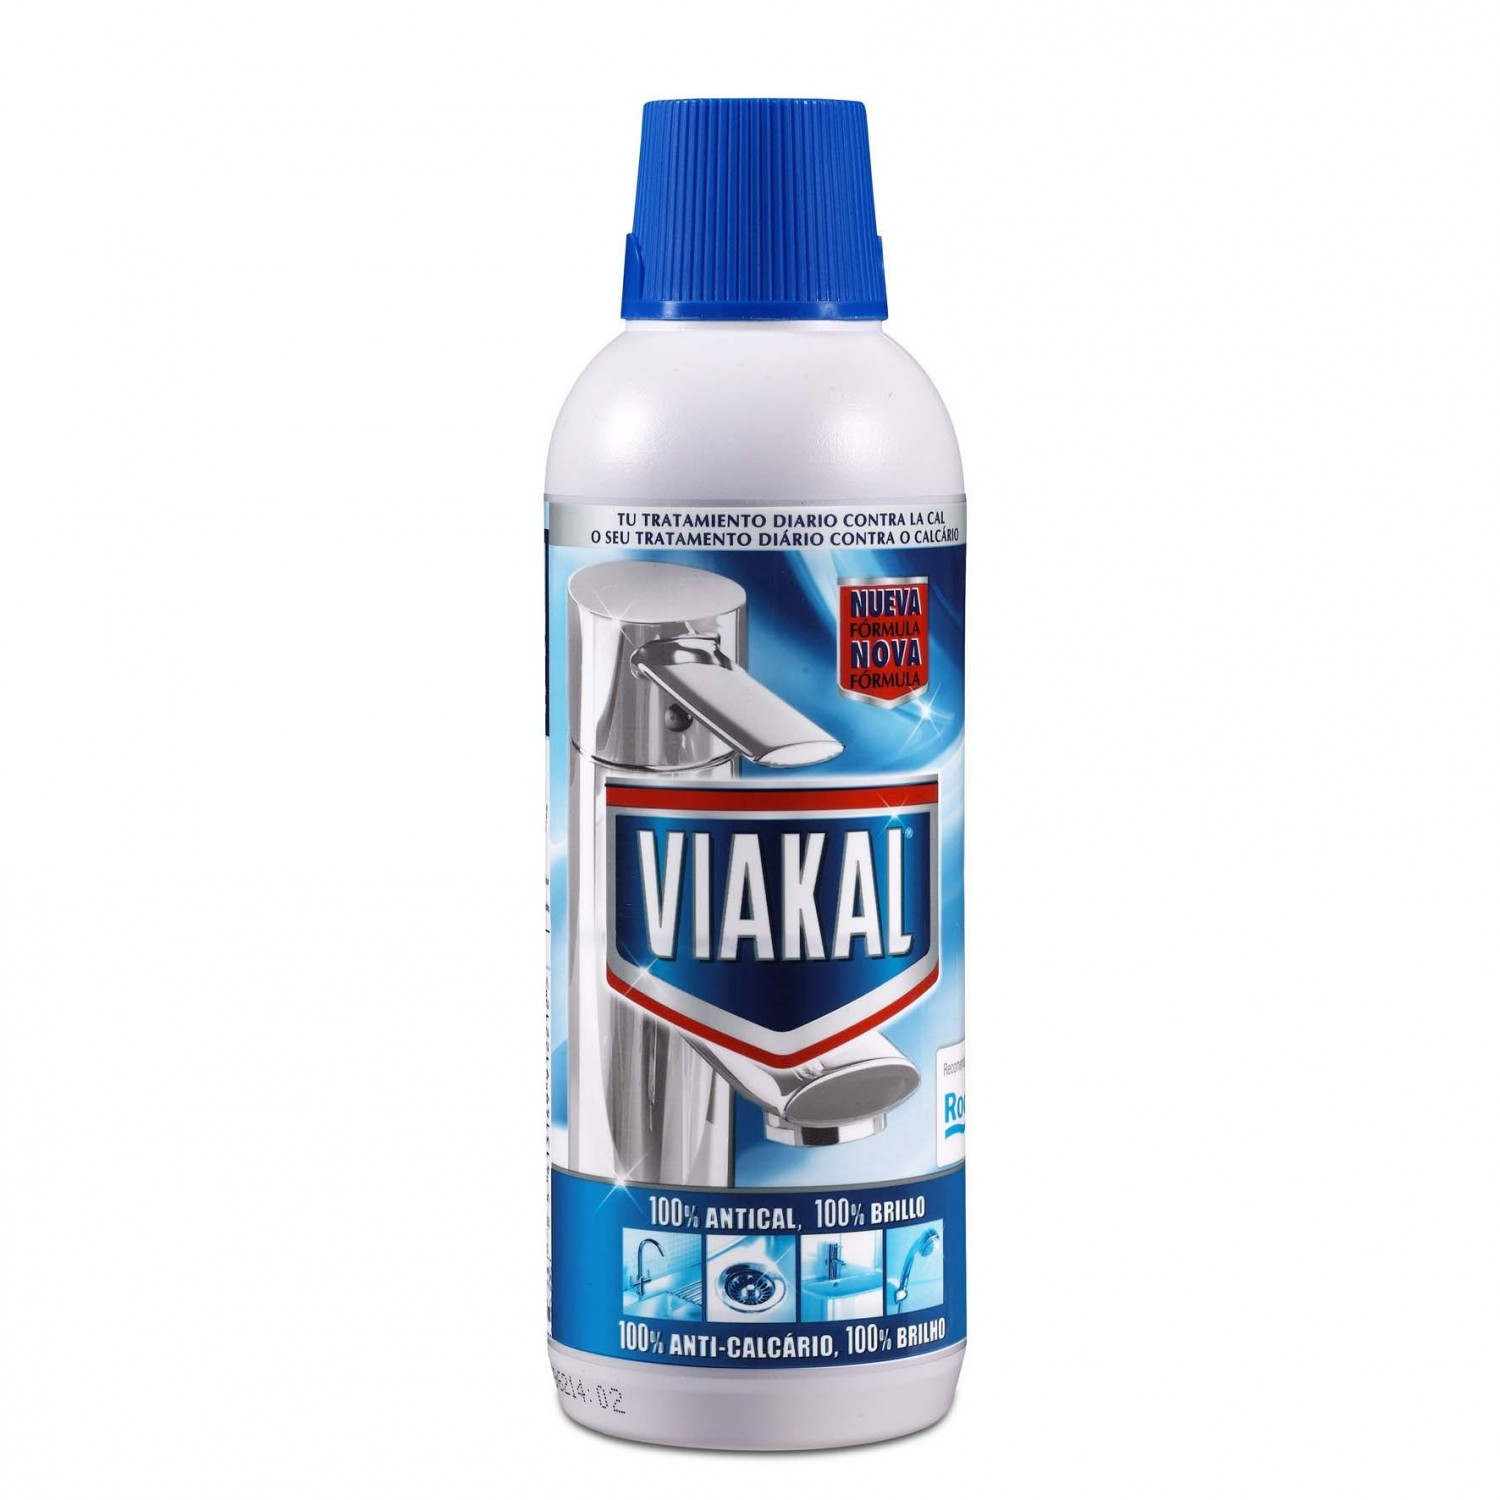 Viakal antical gel de 50cl.